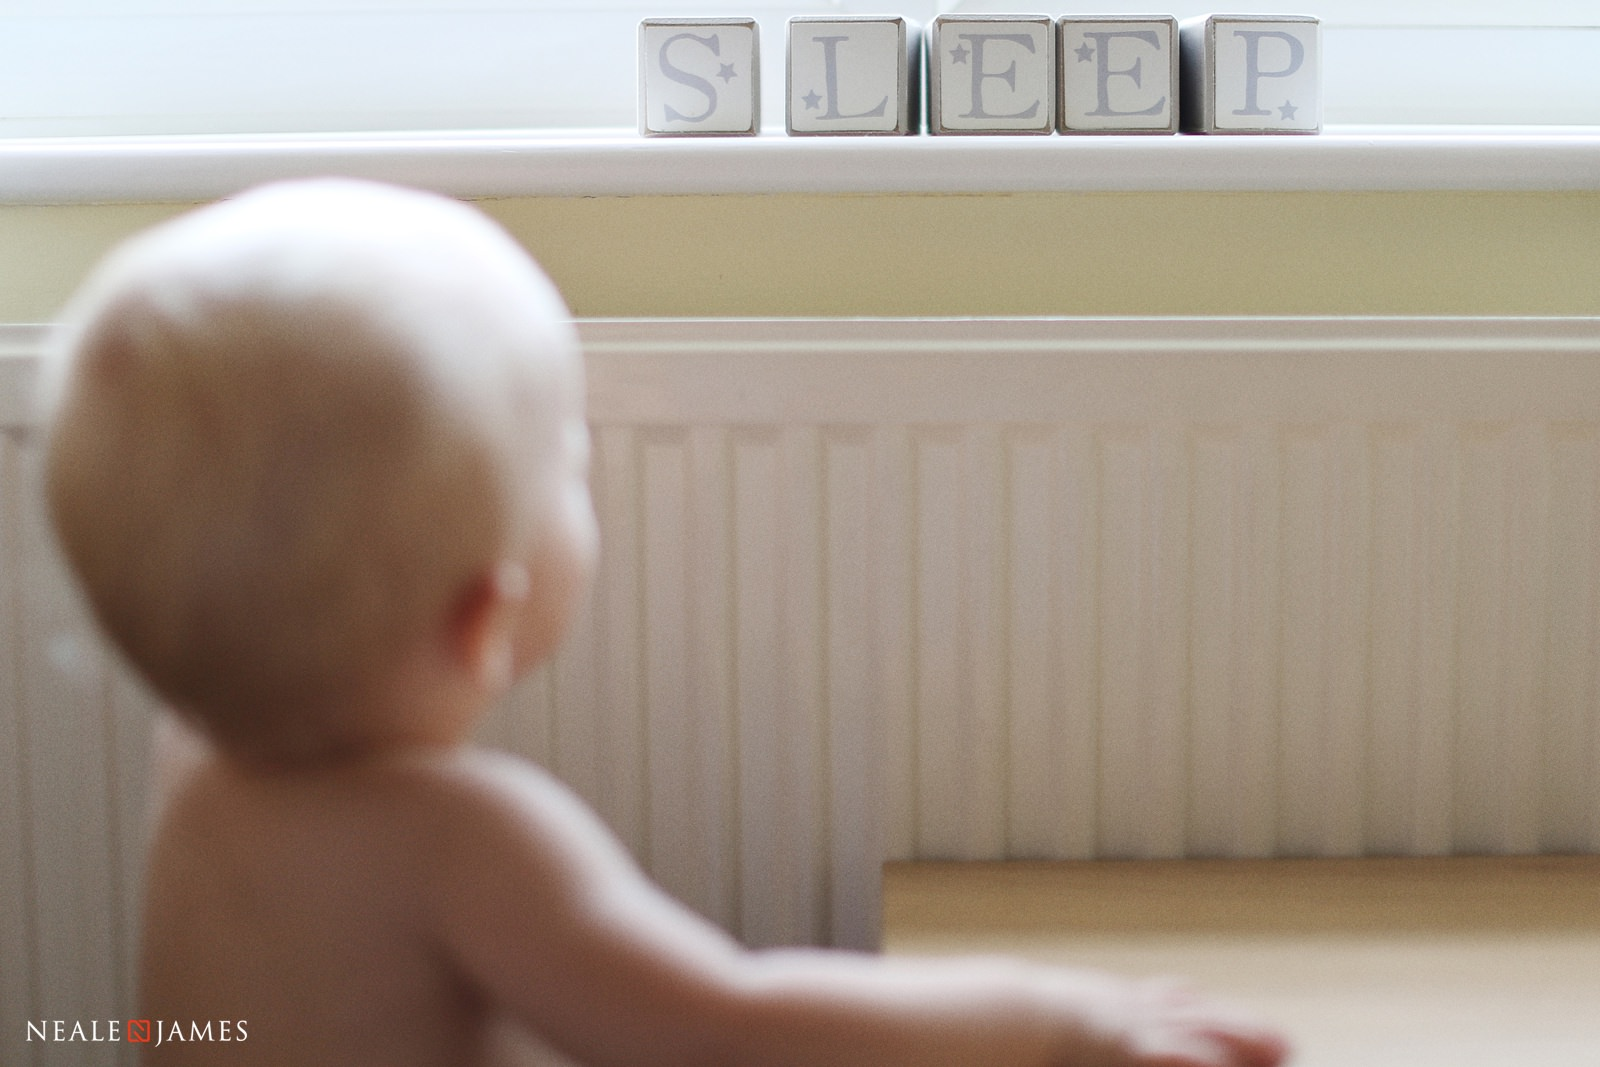 Colour photo of a baby looking at the word 'Sleep'